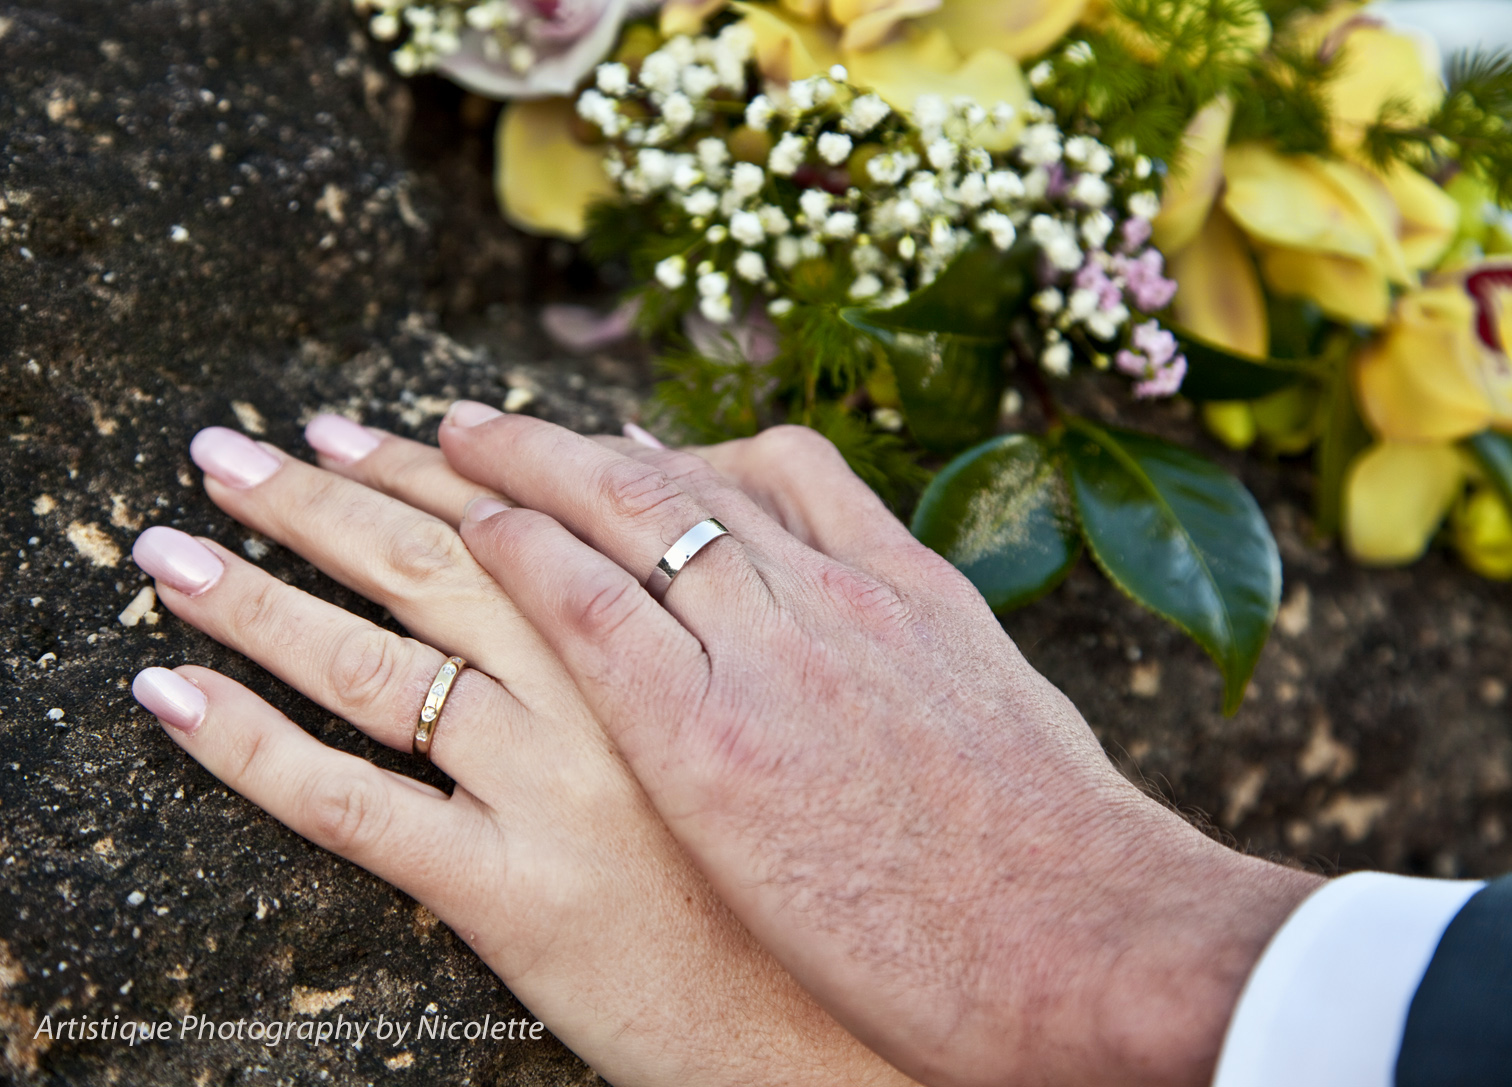 On which hand the wedding ring is worn and how this tradition arose